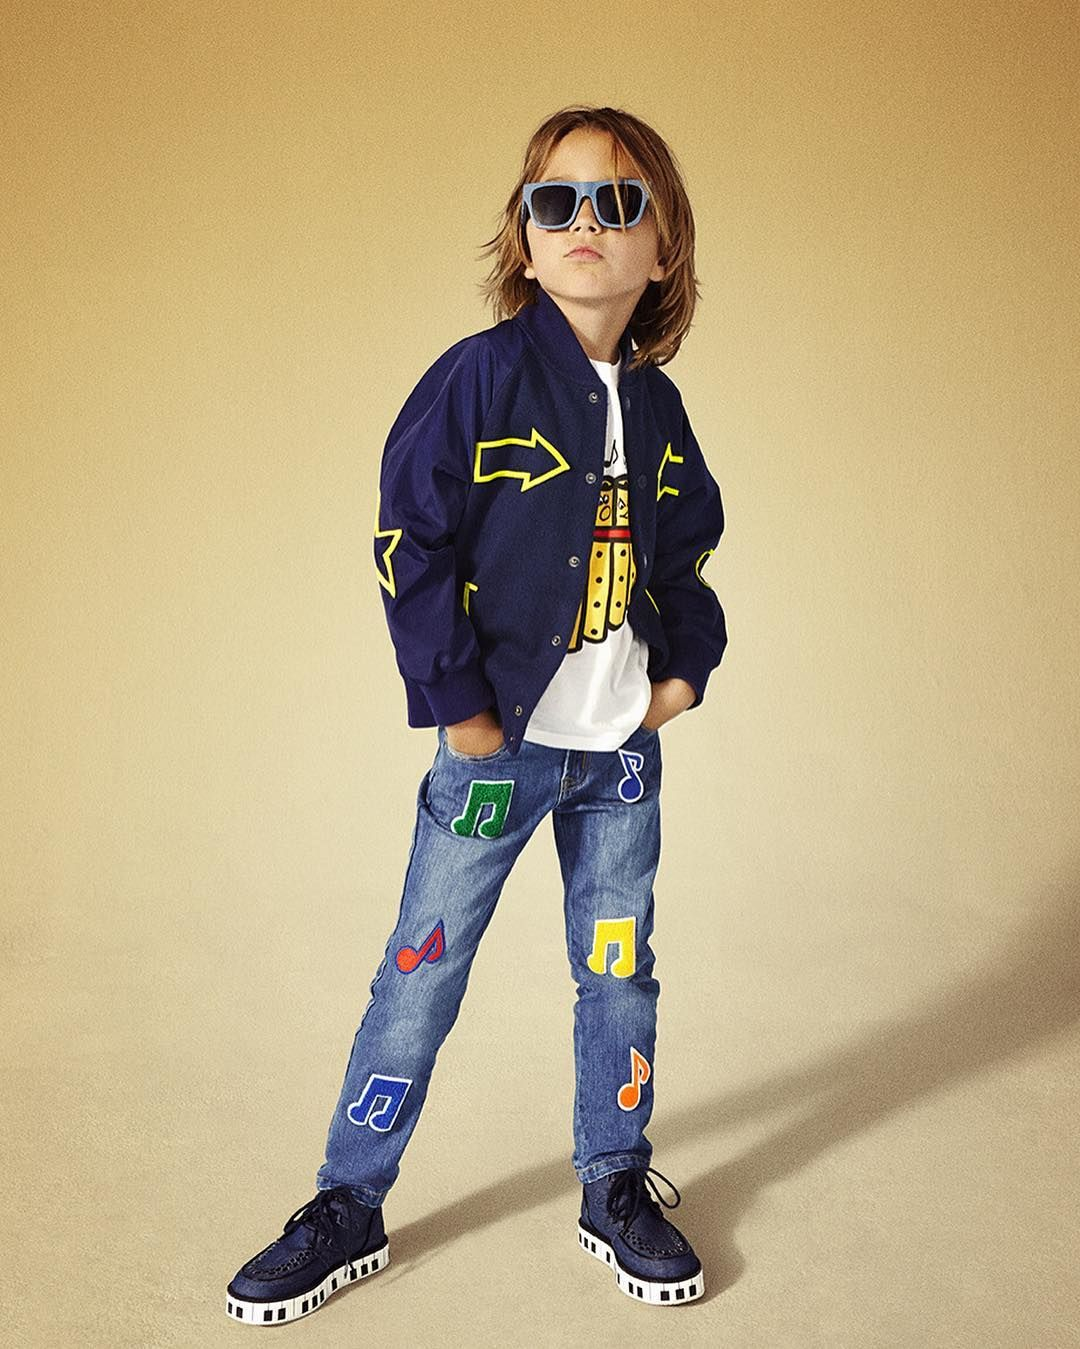 Stella dudes rock new collection prints.  Now available at #StellaMcCartney.com #StellaKids #StellaMcCartneyKids